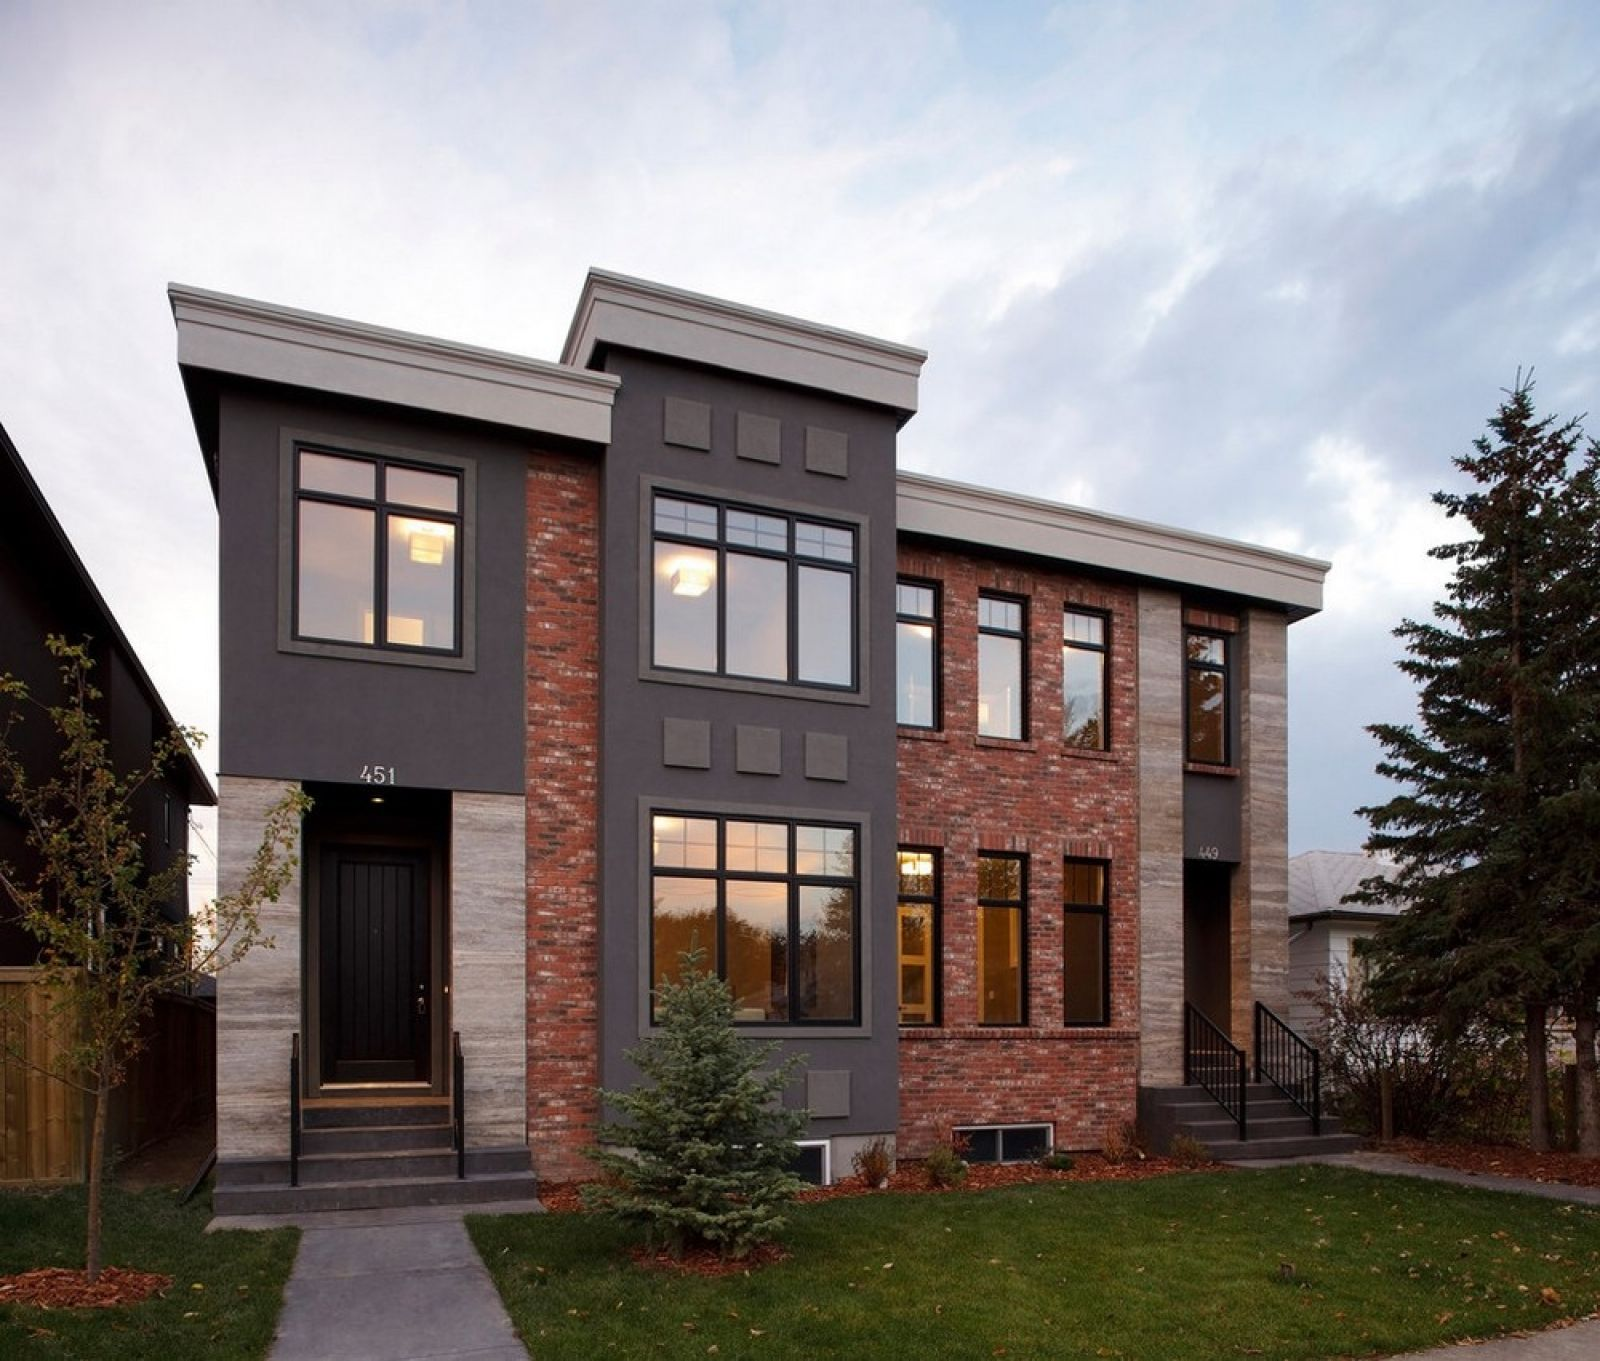 Red brick house houzz - I Like The Brick And Black Windows And Grey And Tile Is Cool Too Dream Home Pinterest Black Windows Bricks And Gray